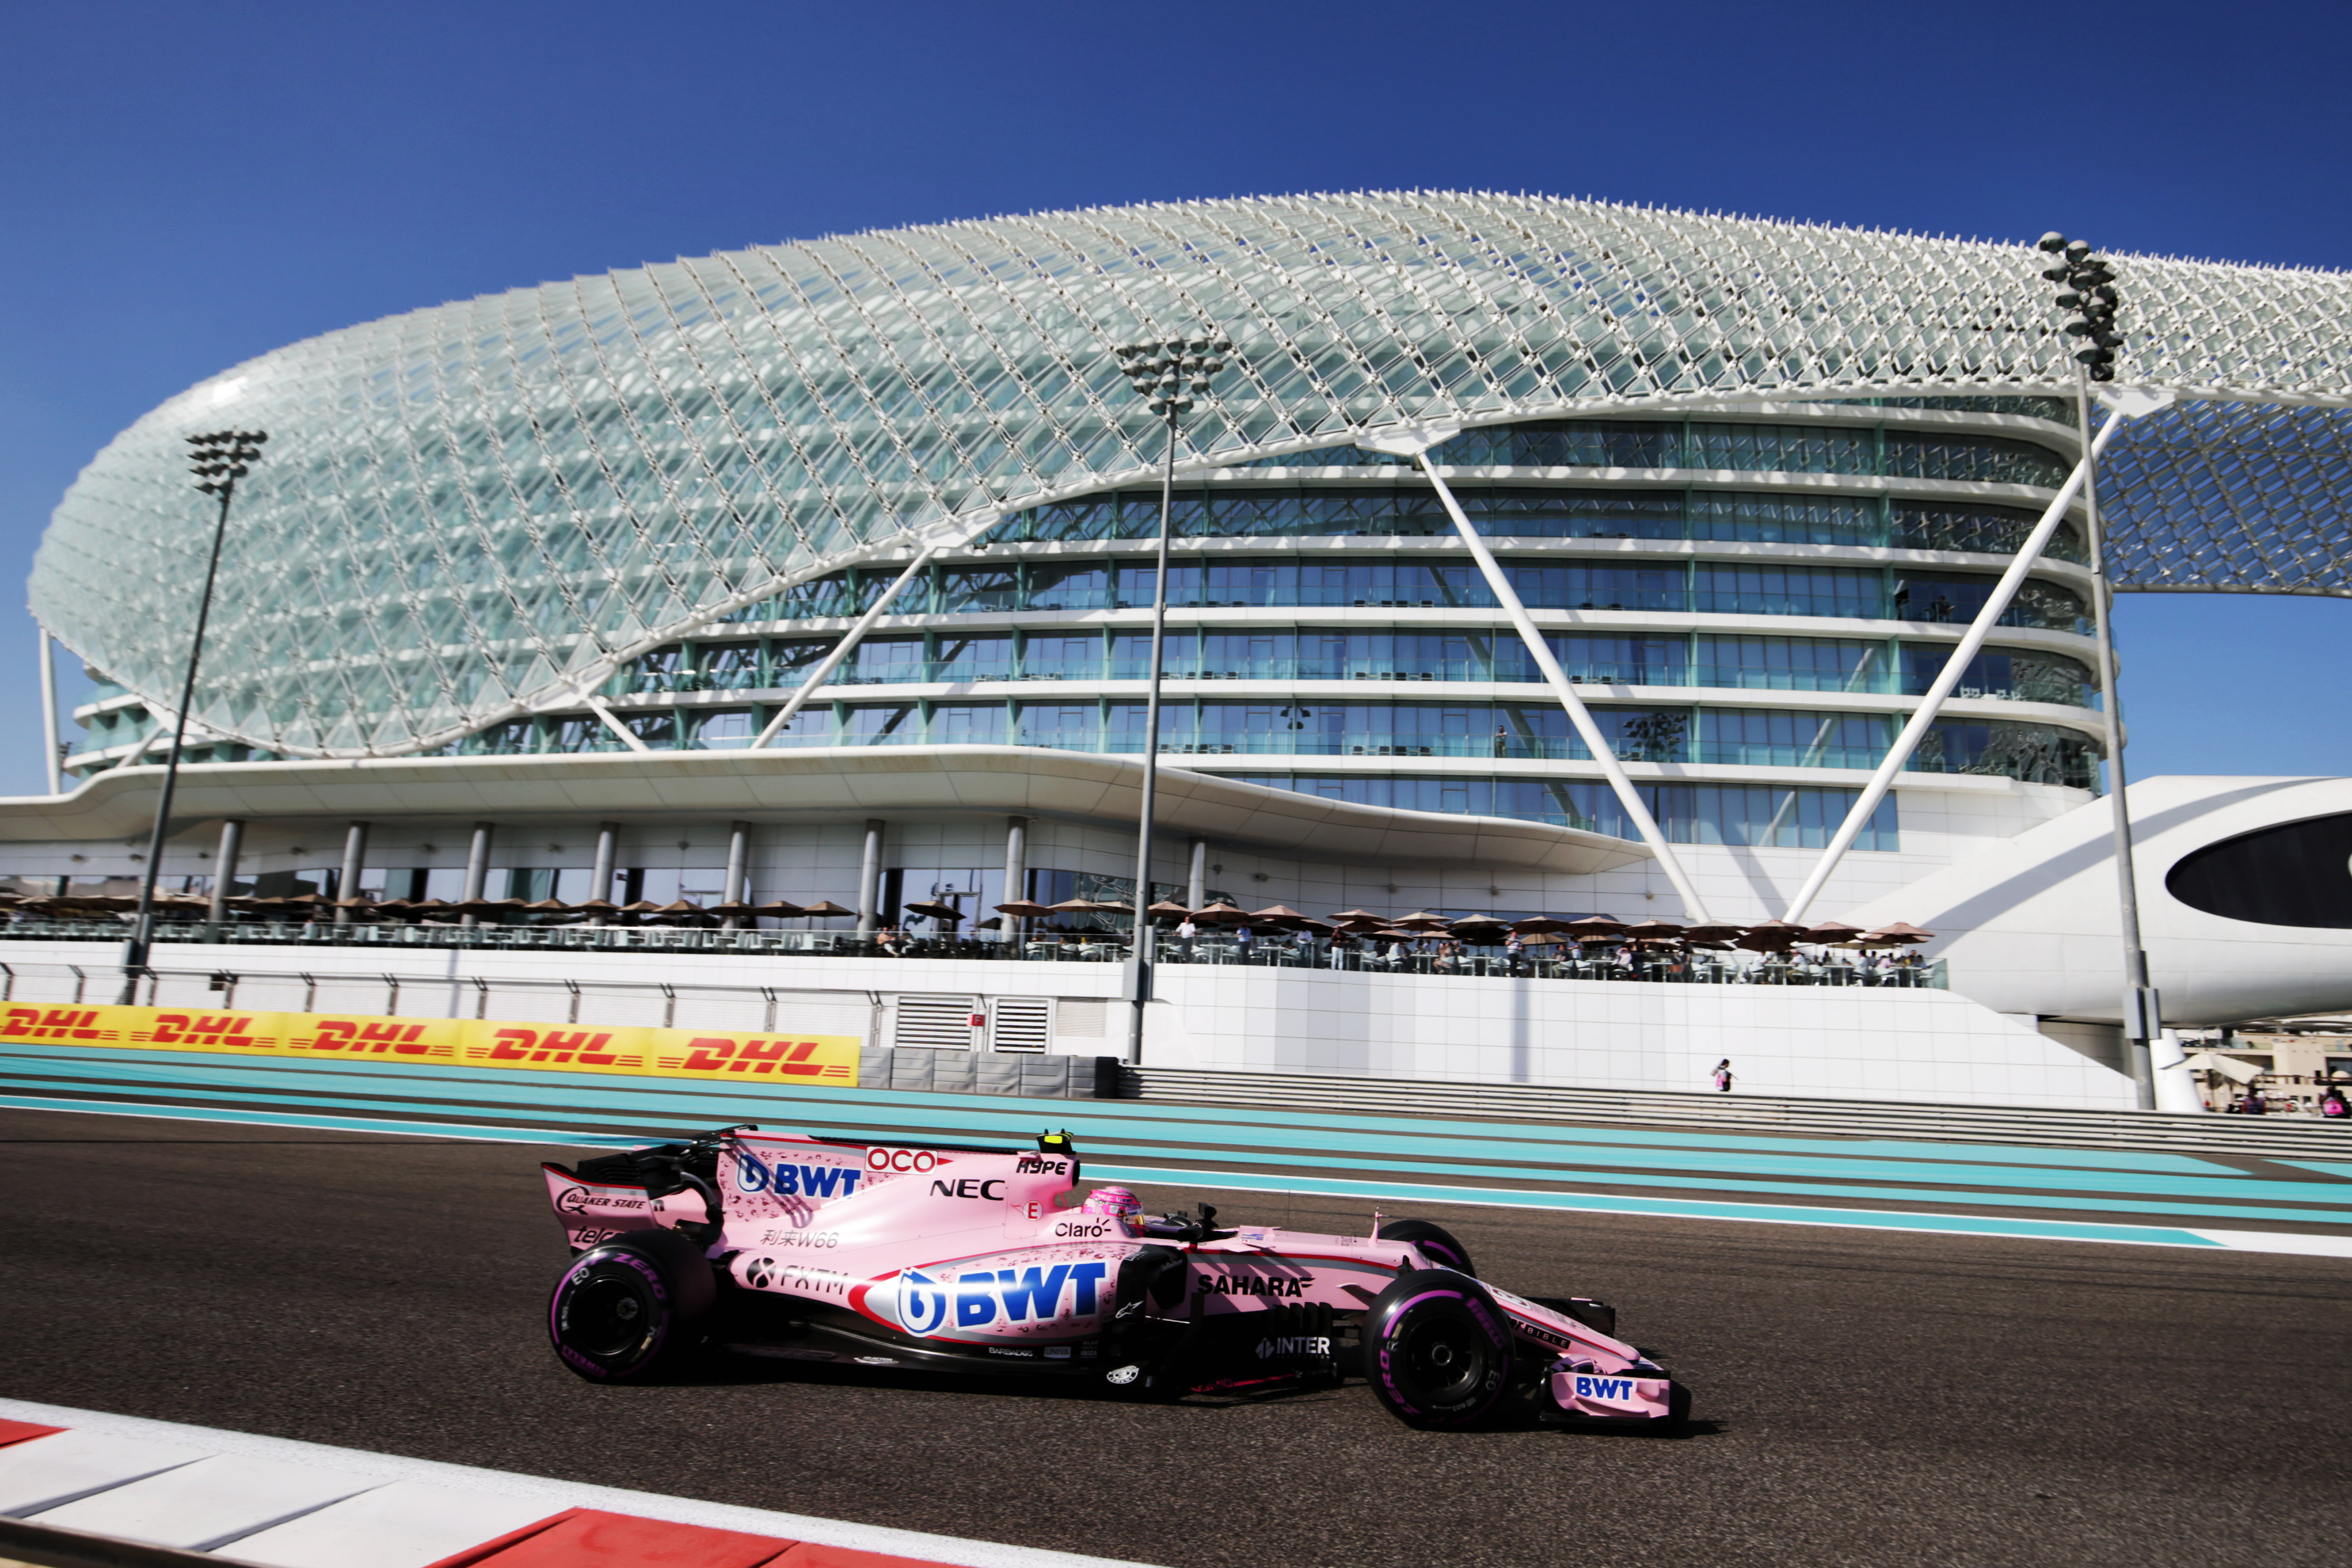 Formula One World Championship 2017, Round 20, Abu Dhabi Grand Prix, Abu Dhabi, United Arab Emirates, Saturday 25 November 2017 – Esteban Ocon (FRA) Sahara Force India F1 VJM10.